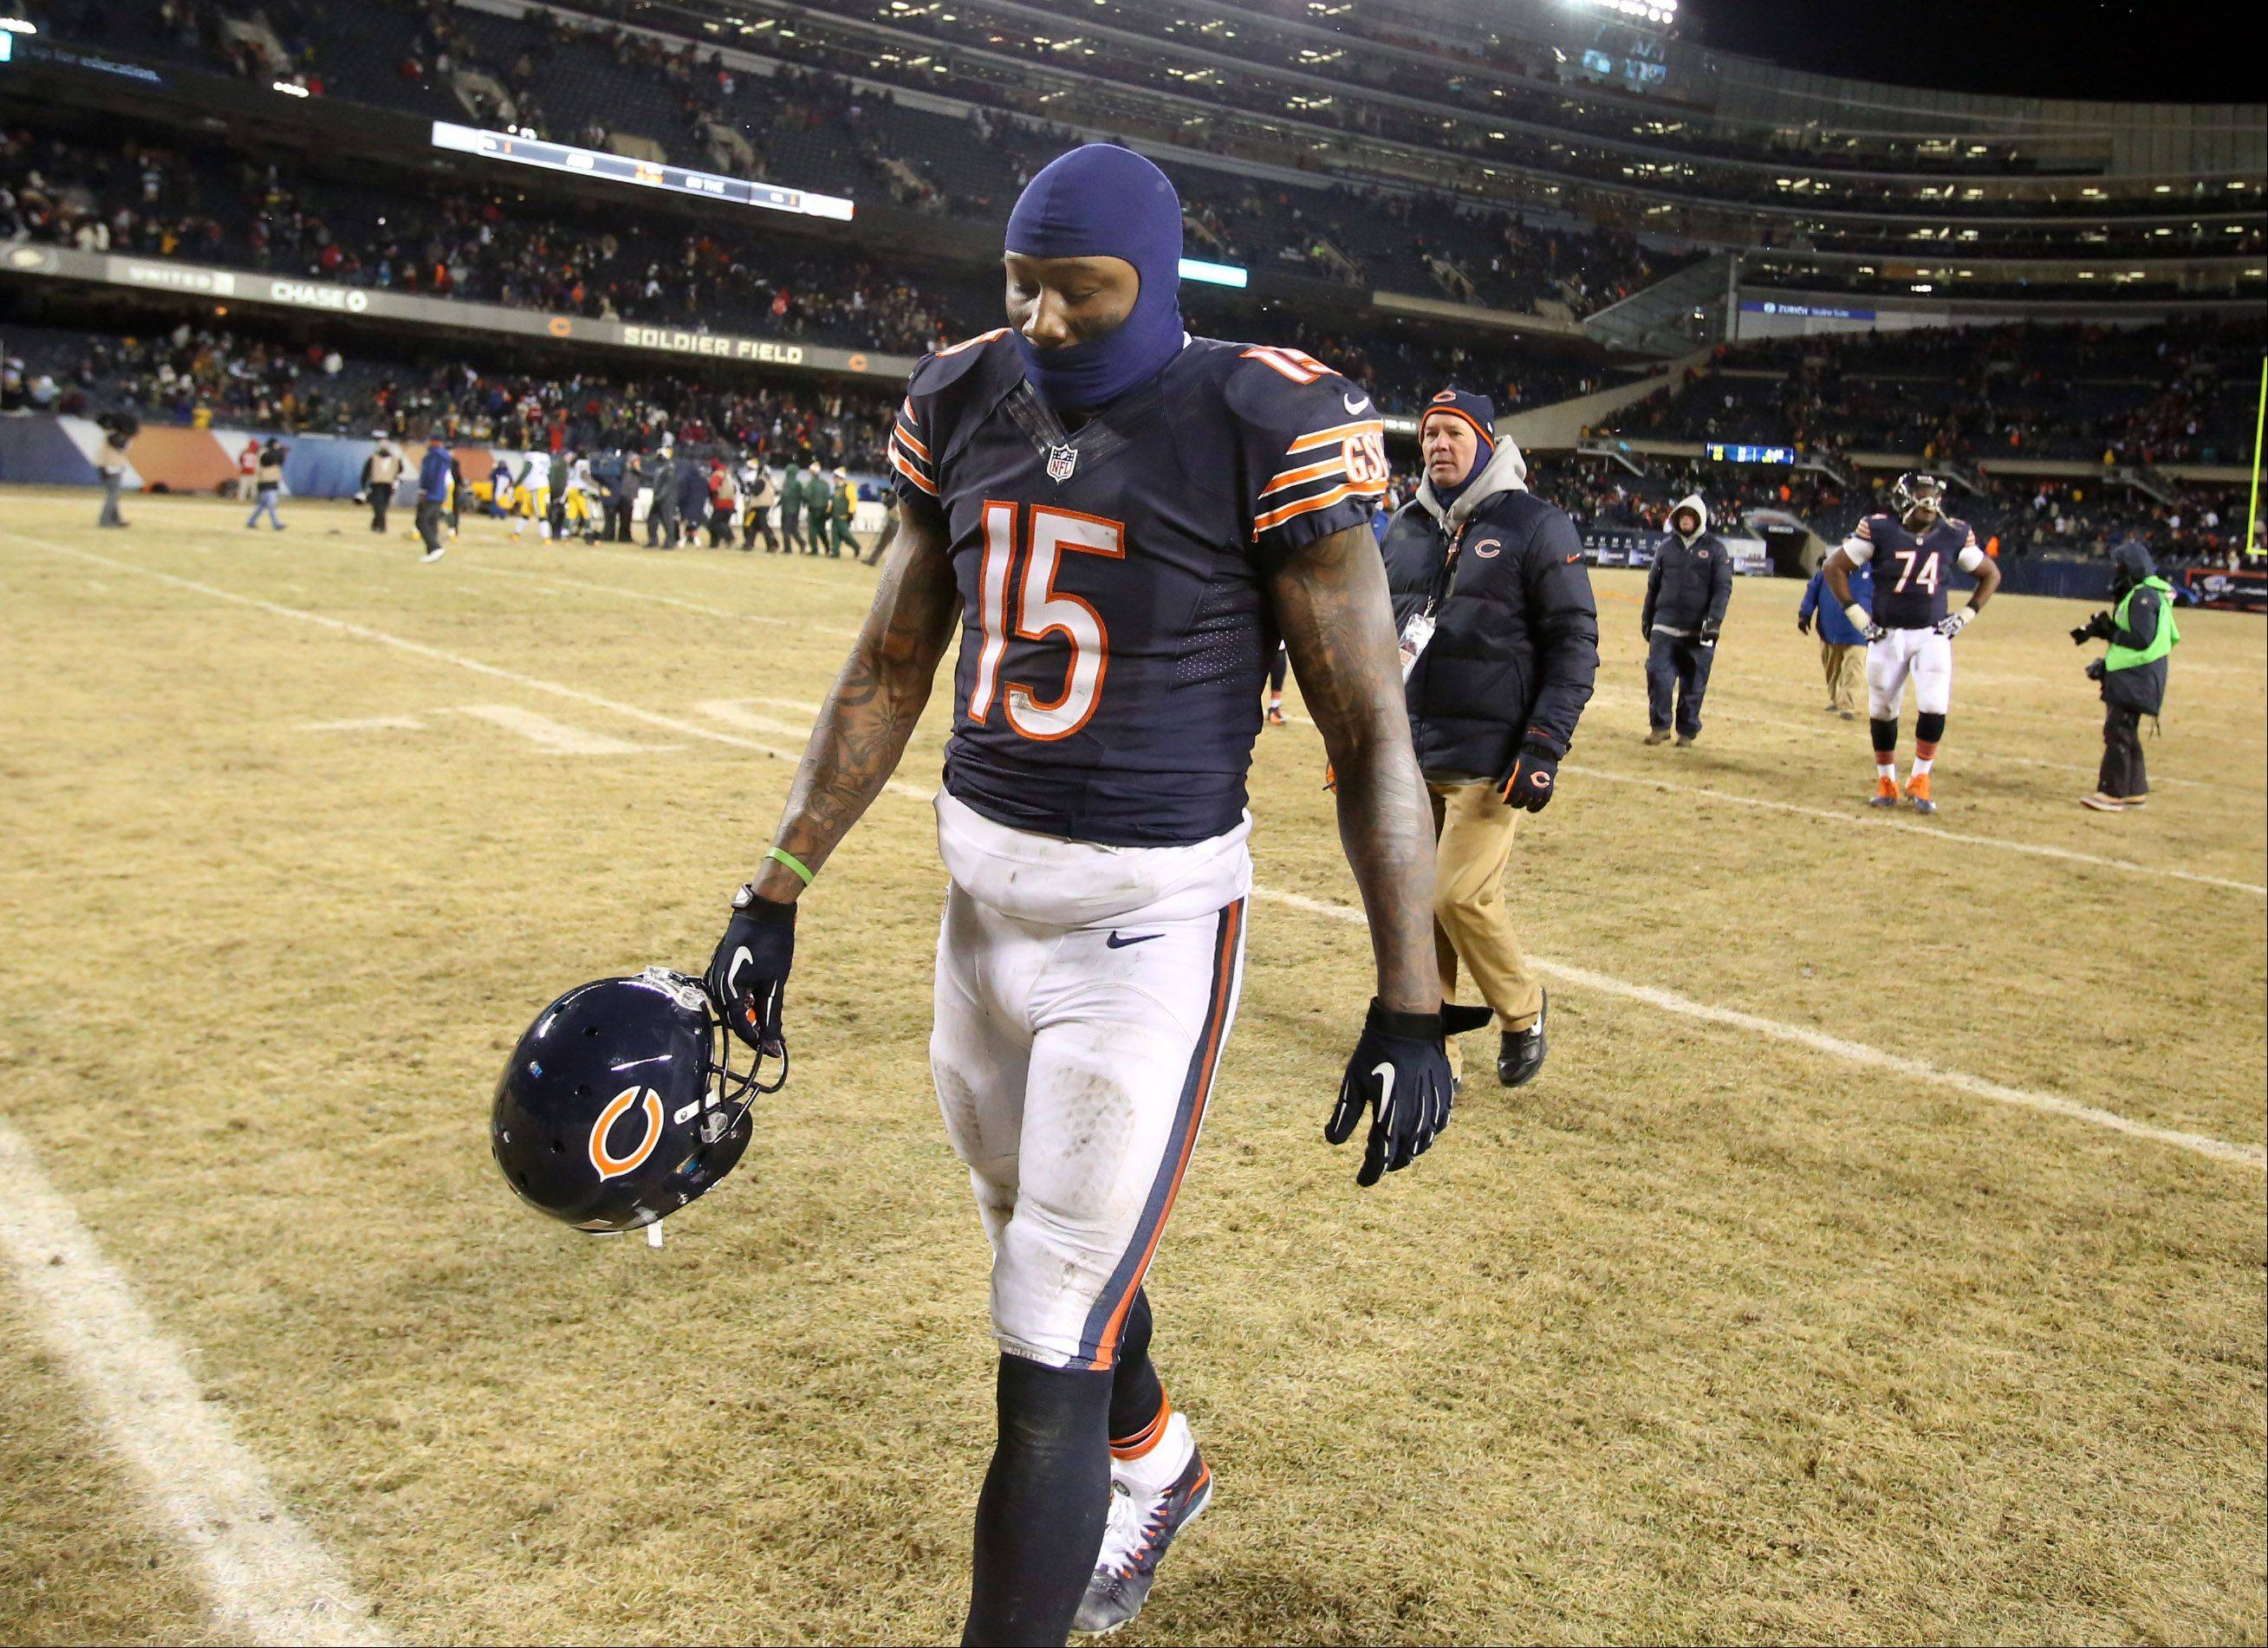 Chicago Bears wide receiver Brandon Marshall walks off the field after losing to the Green Bay Packers 33-28 on Sunday at Soldier Field in Chicago.